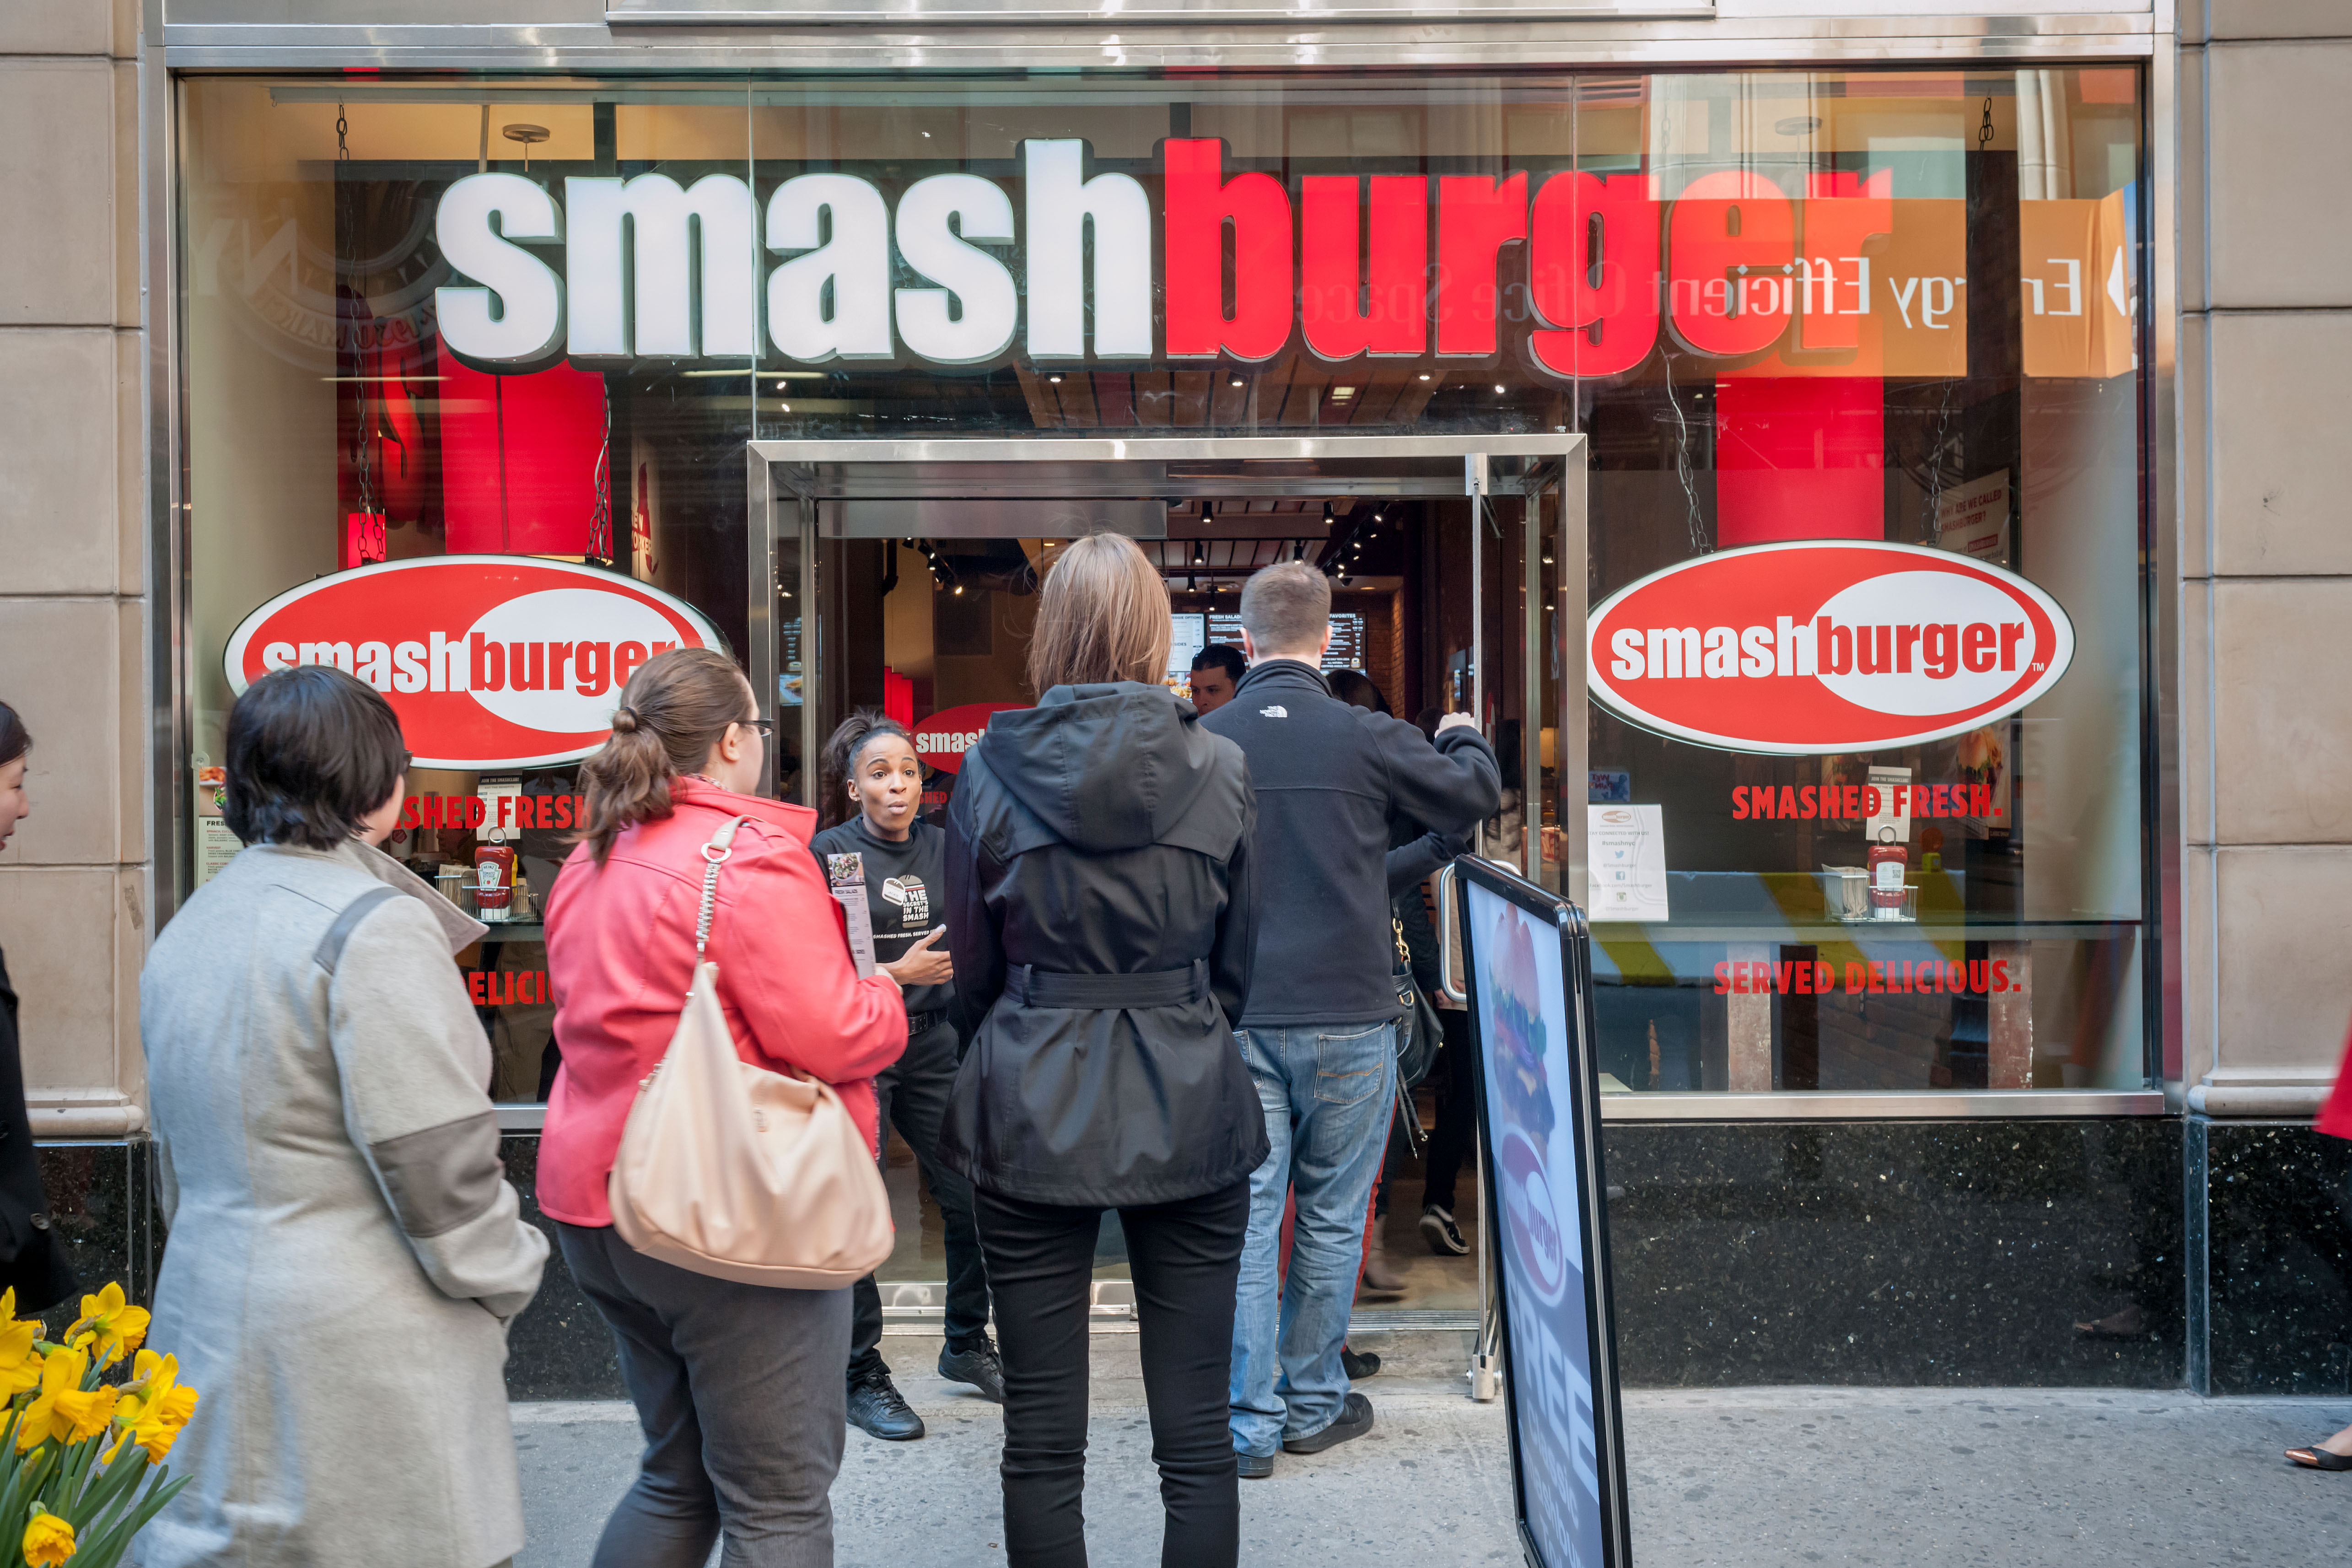 Burger lovers from far and wide descend on the new Smashburger restaurant in New York